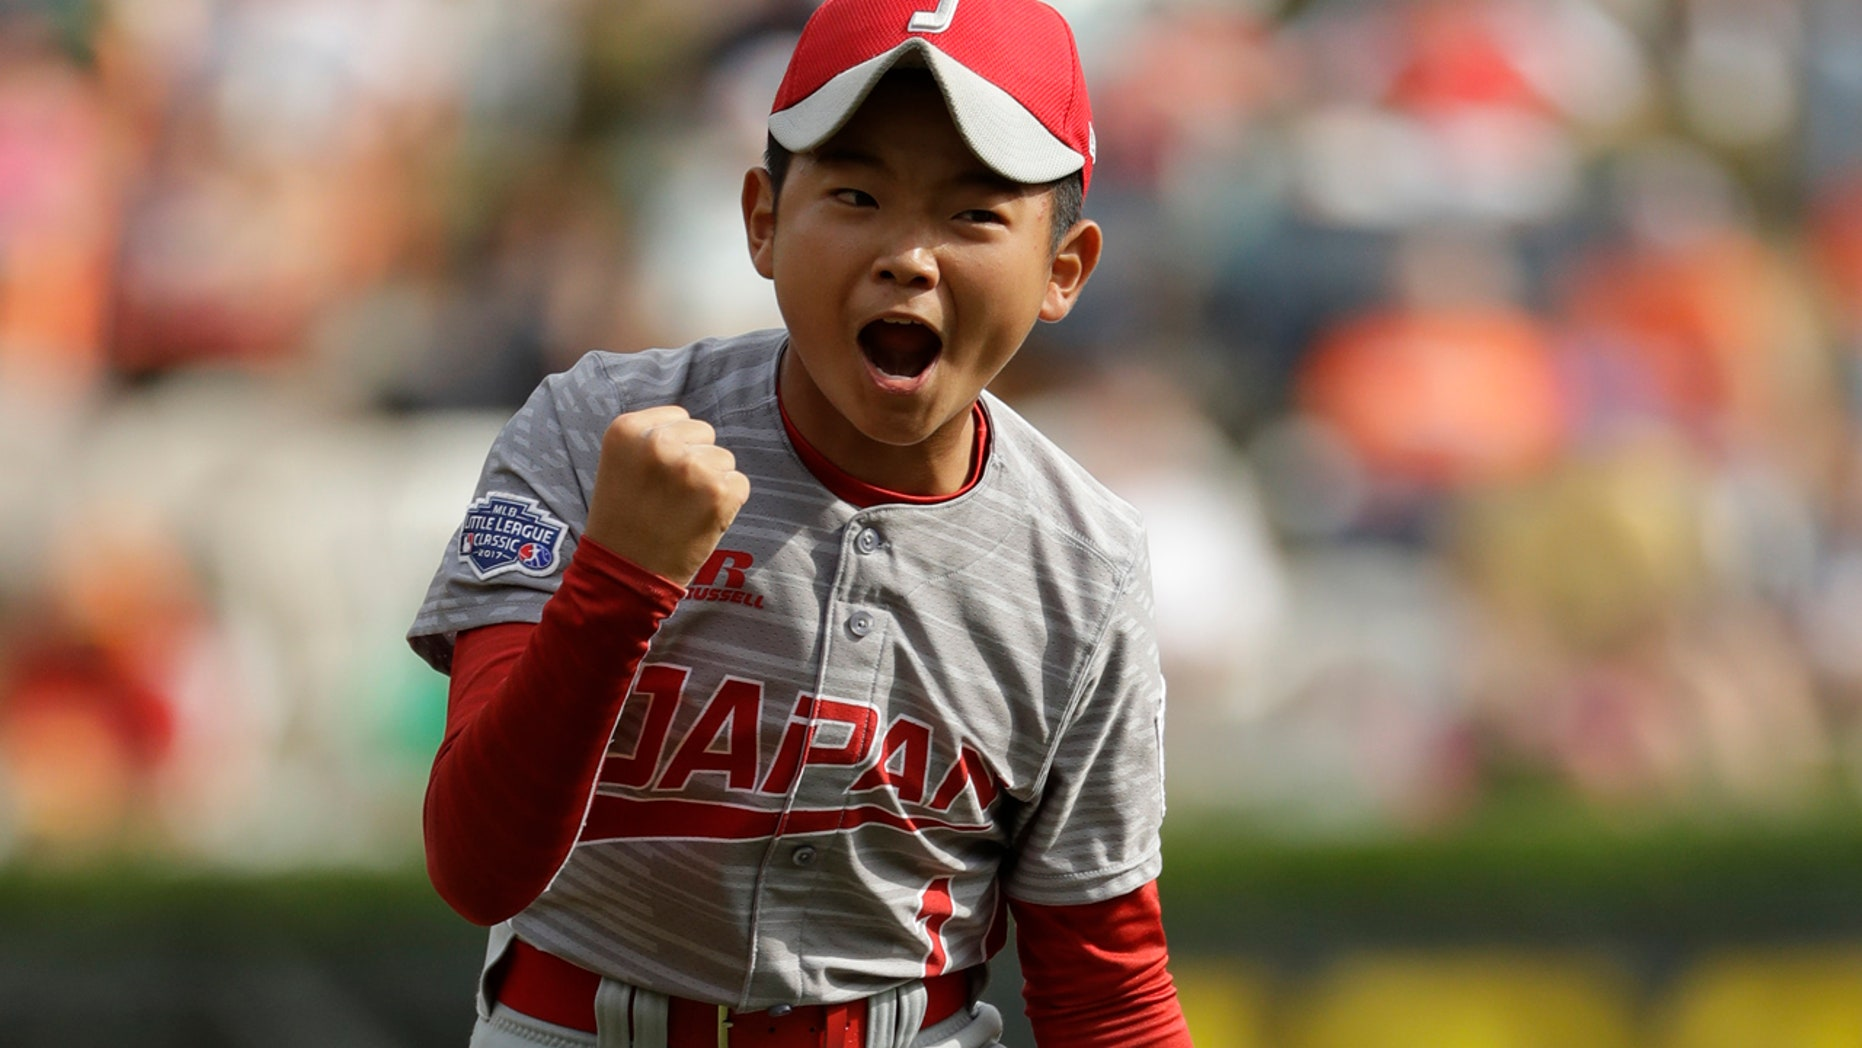 Aug. 27: Japan's Tsubasa Tomii celebrates an out during the Little League World Series Championship baseball game against Lufkin, Texas, in Pa.